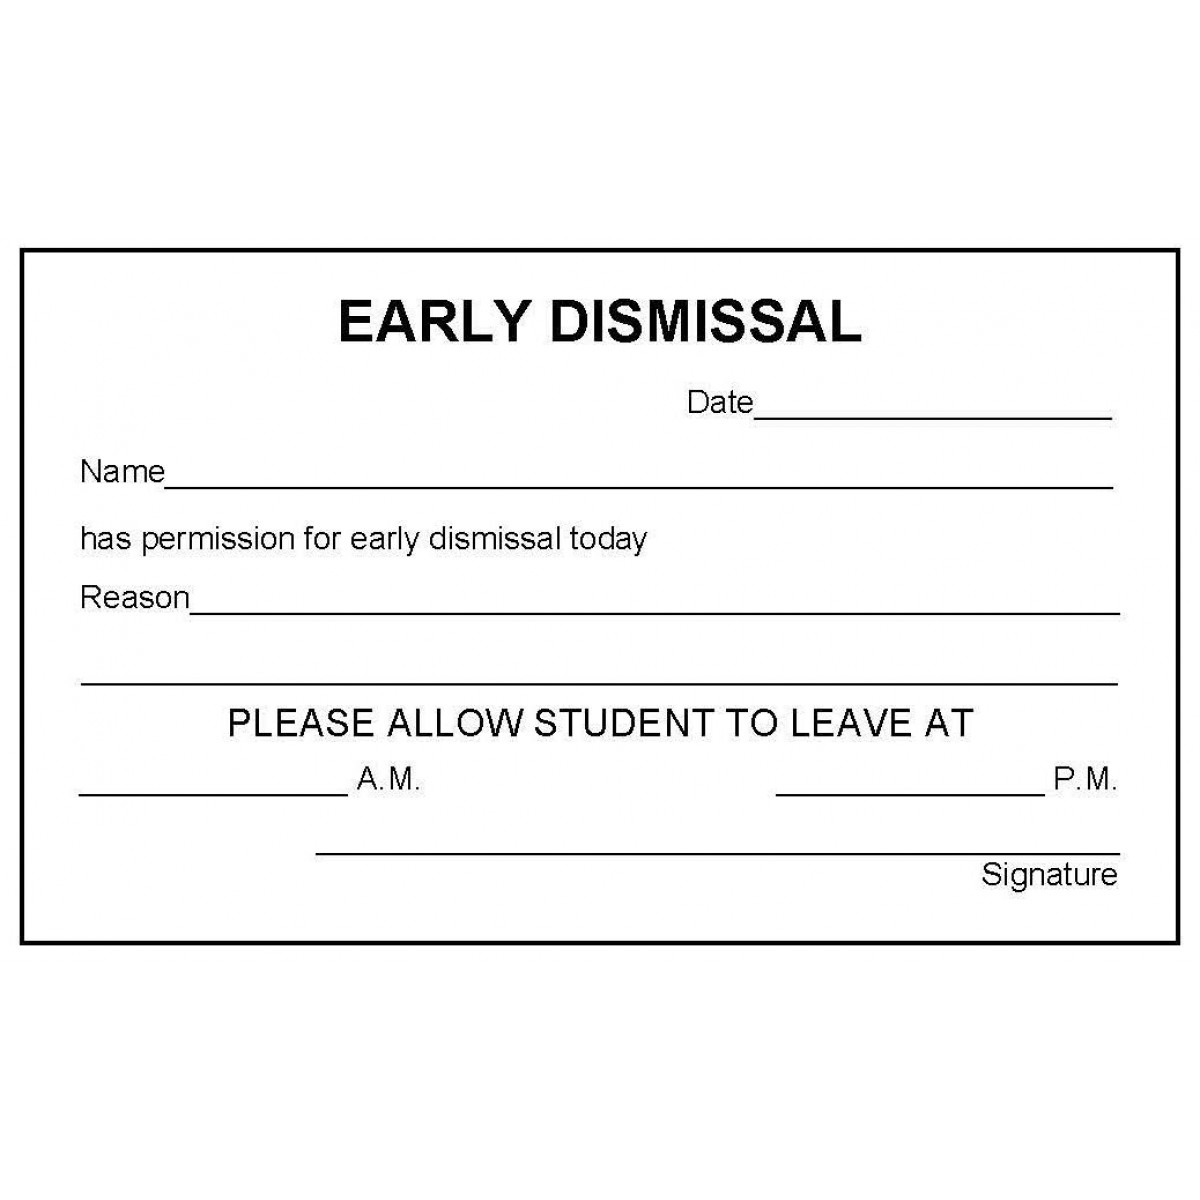 how to leave school early without permission